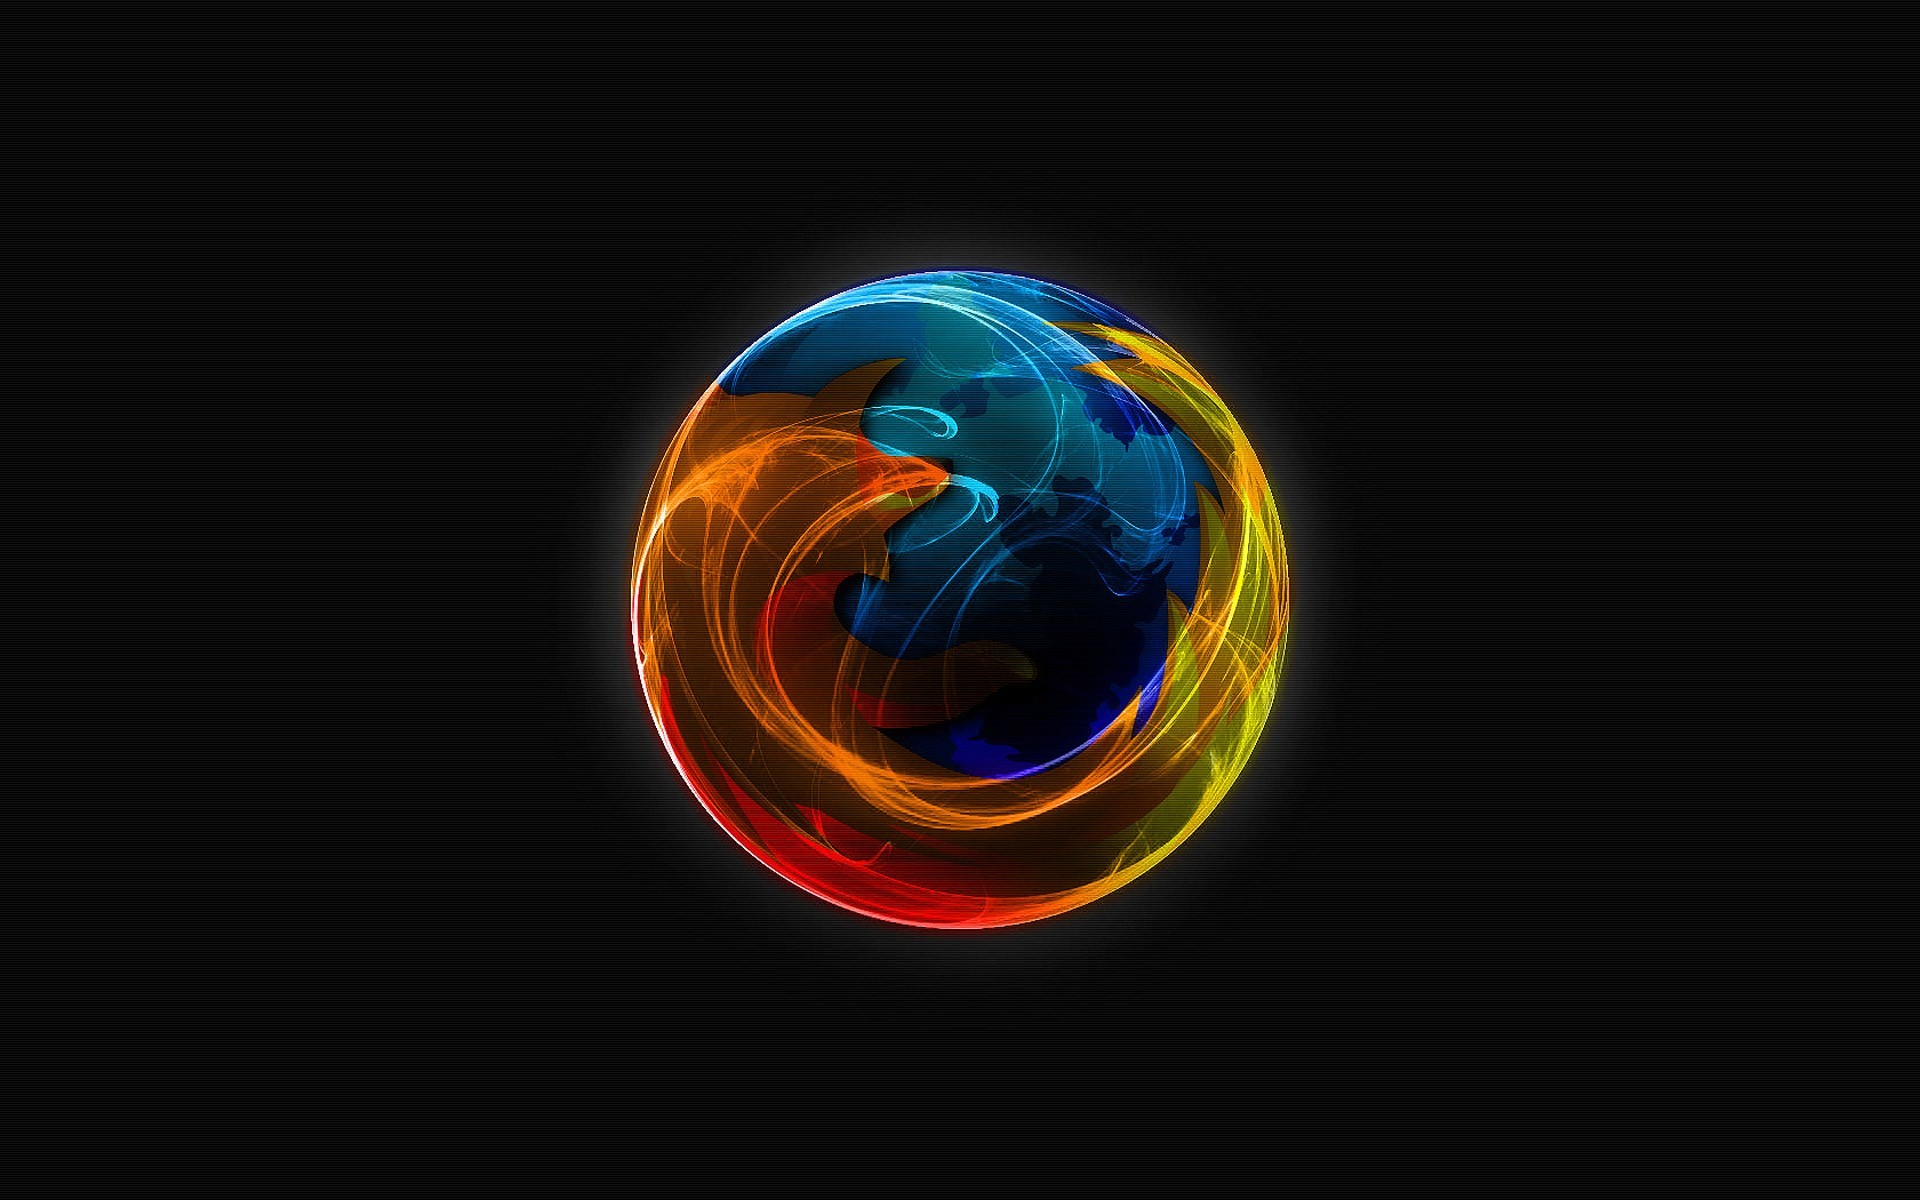 1920x1200 Mozilla Firefox Backgrounds Free Download Wallpaper for Desktop